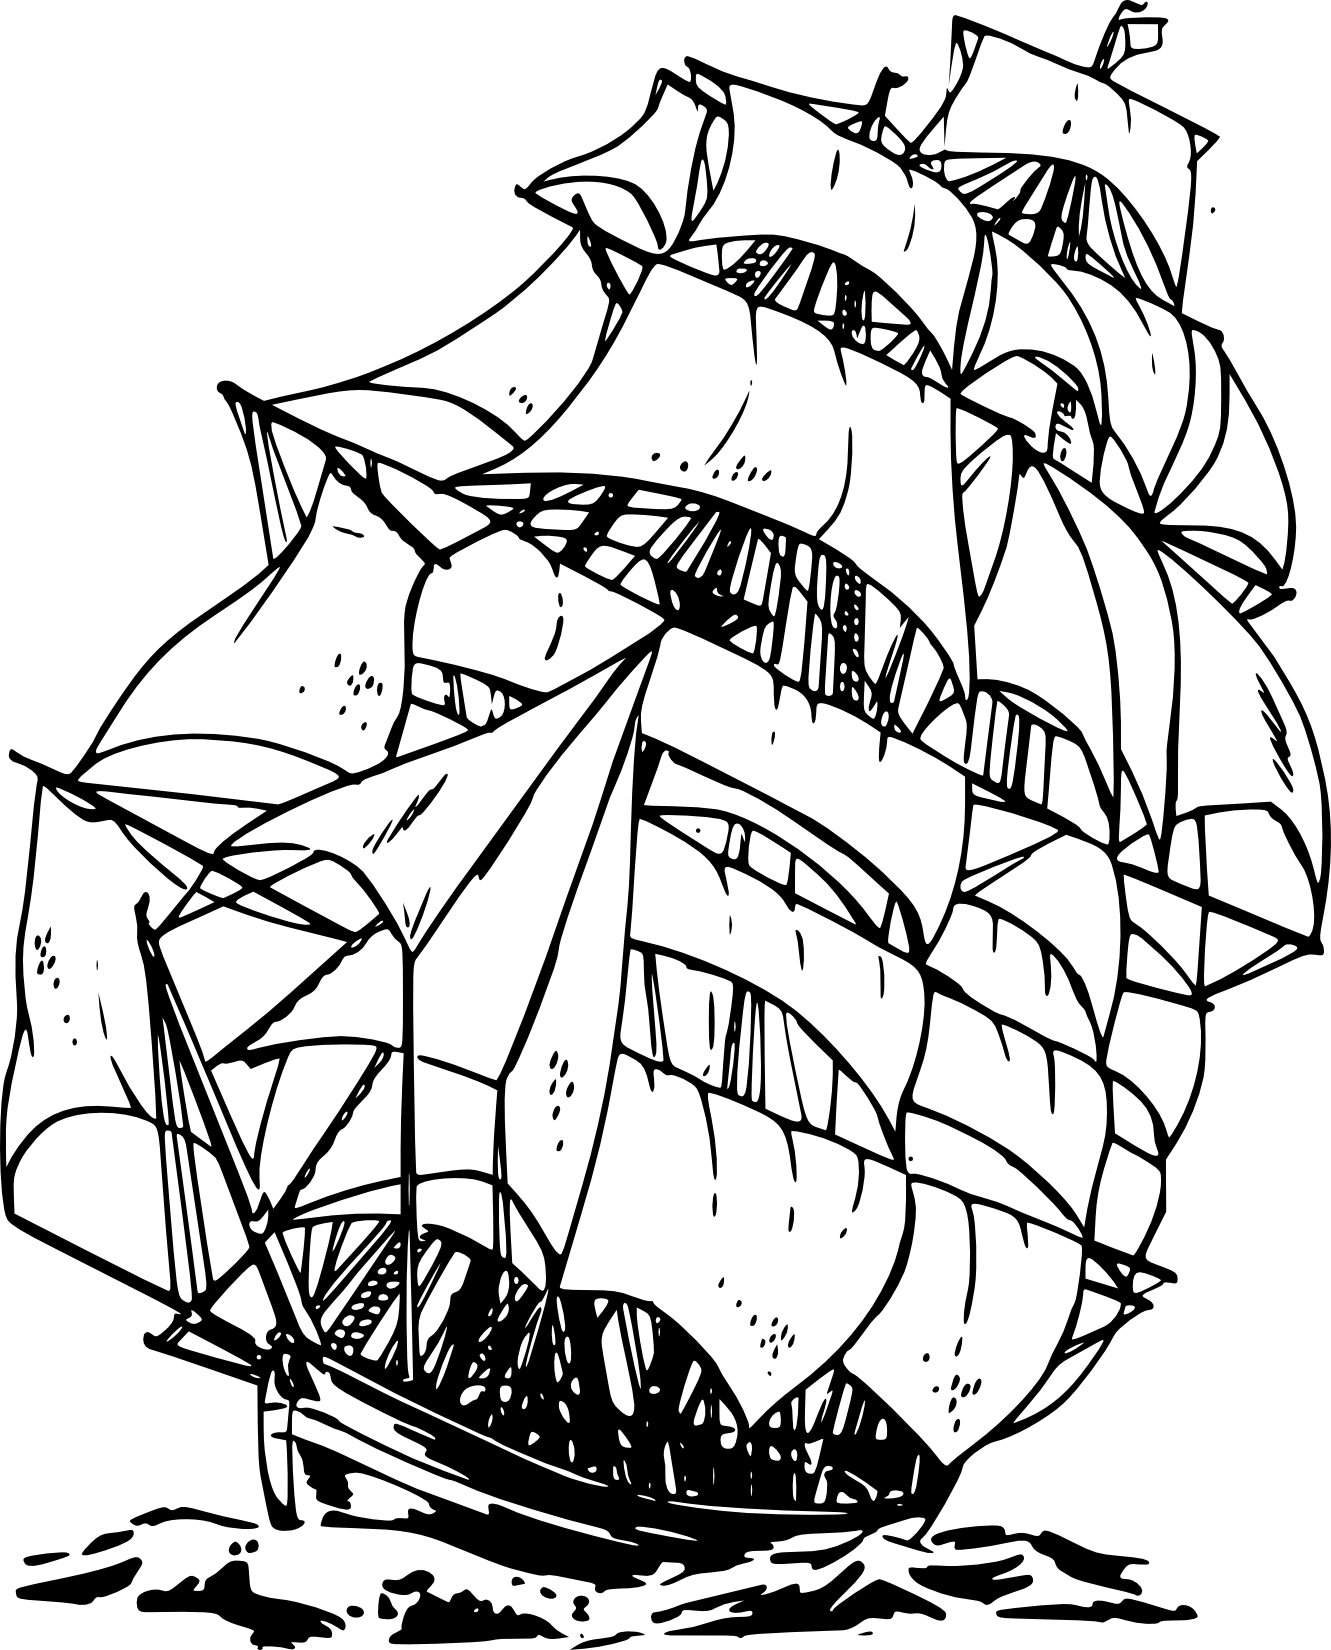 Pirate Ship Clipart Black And White Clipart Panda Free